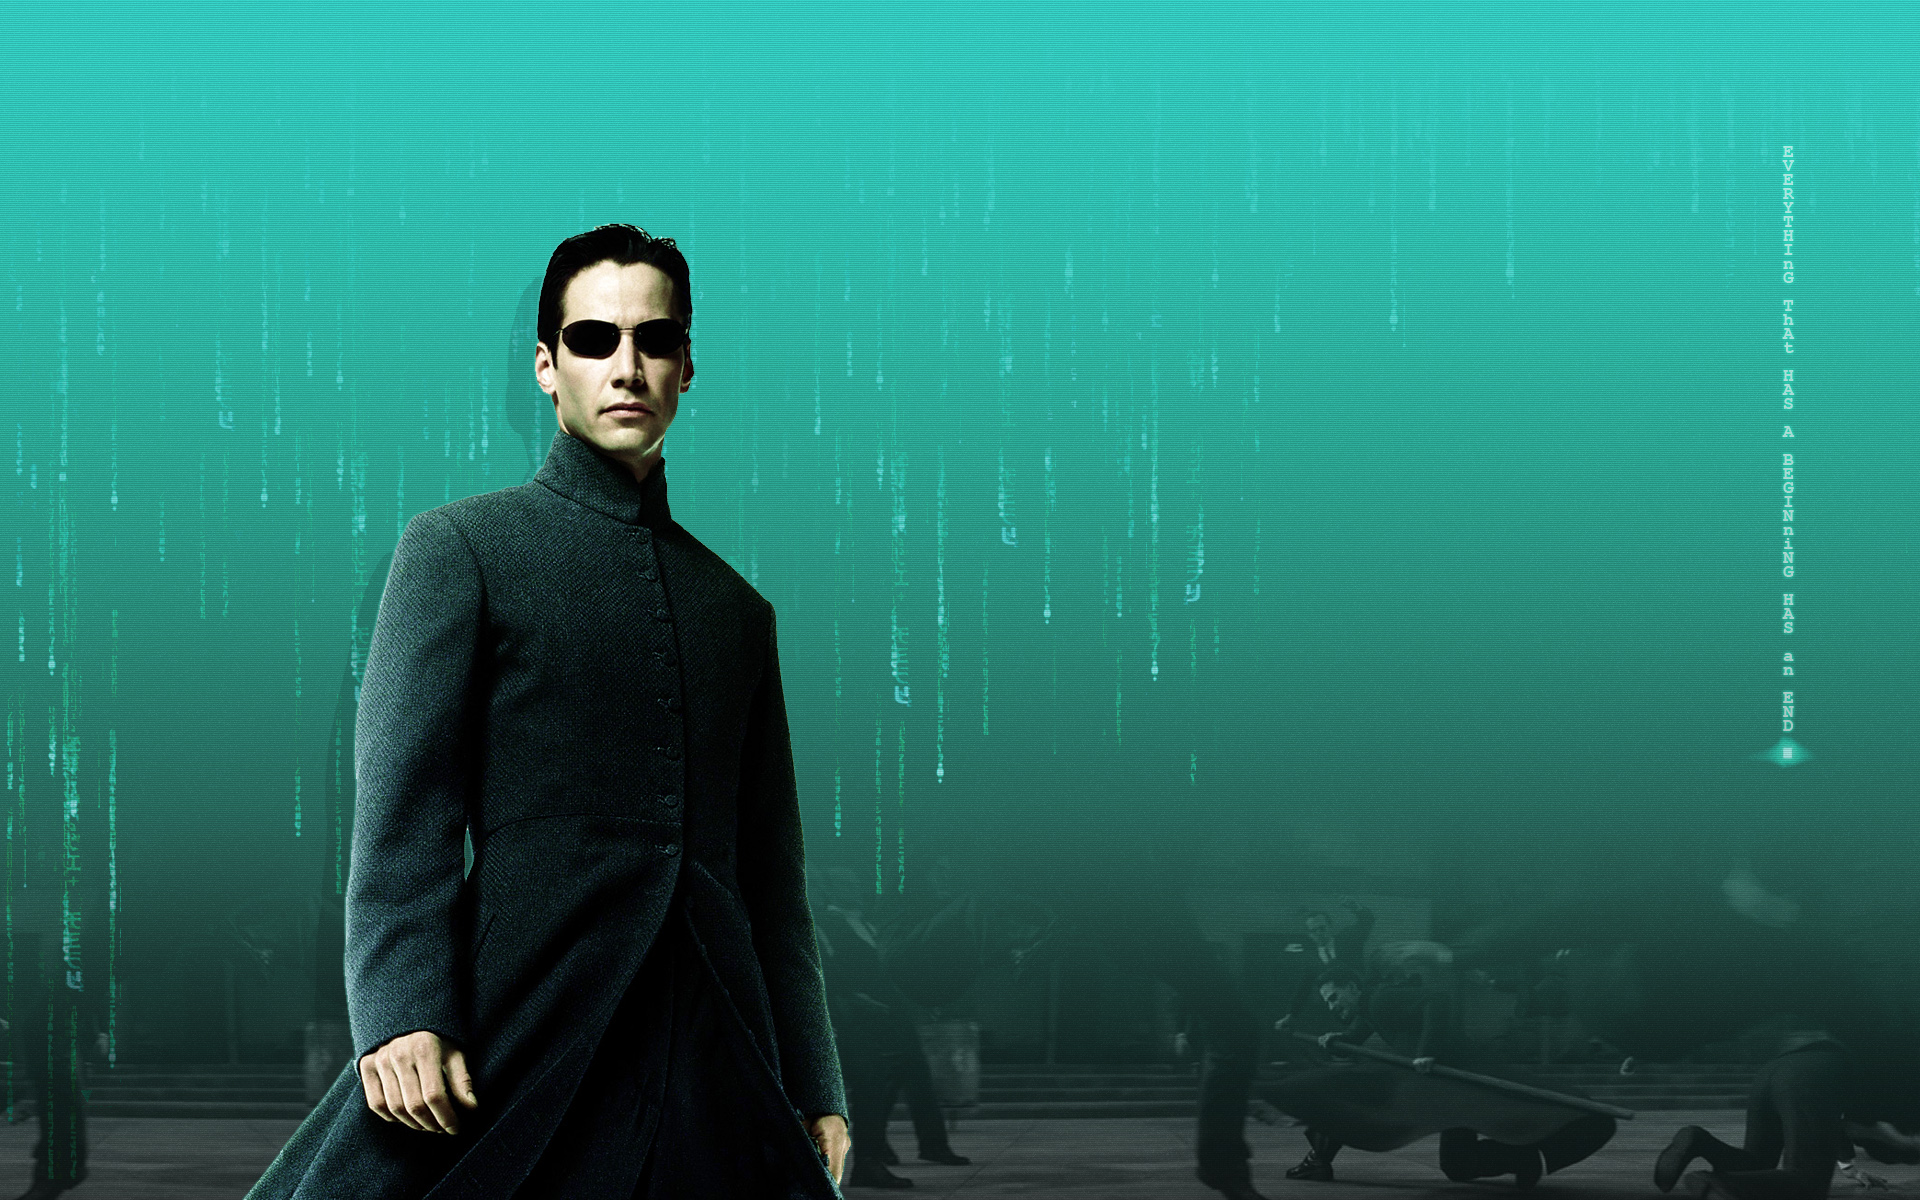 matrix wallpaper